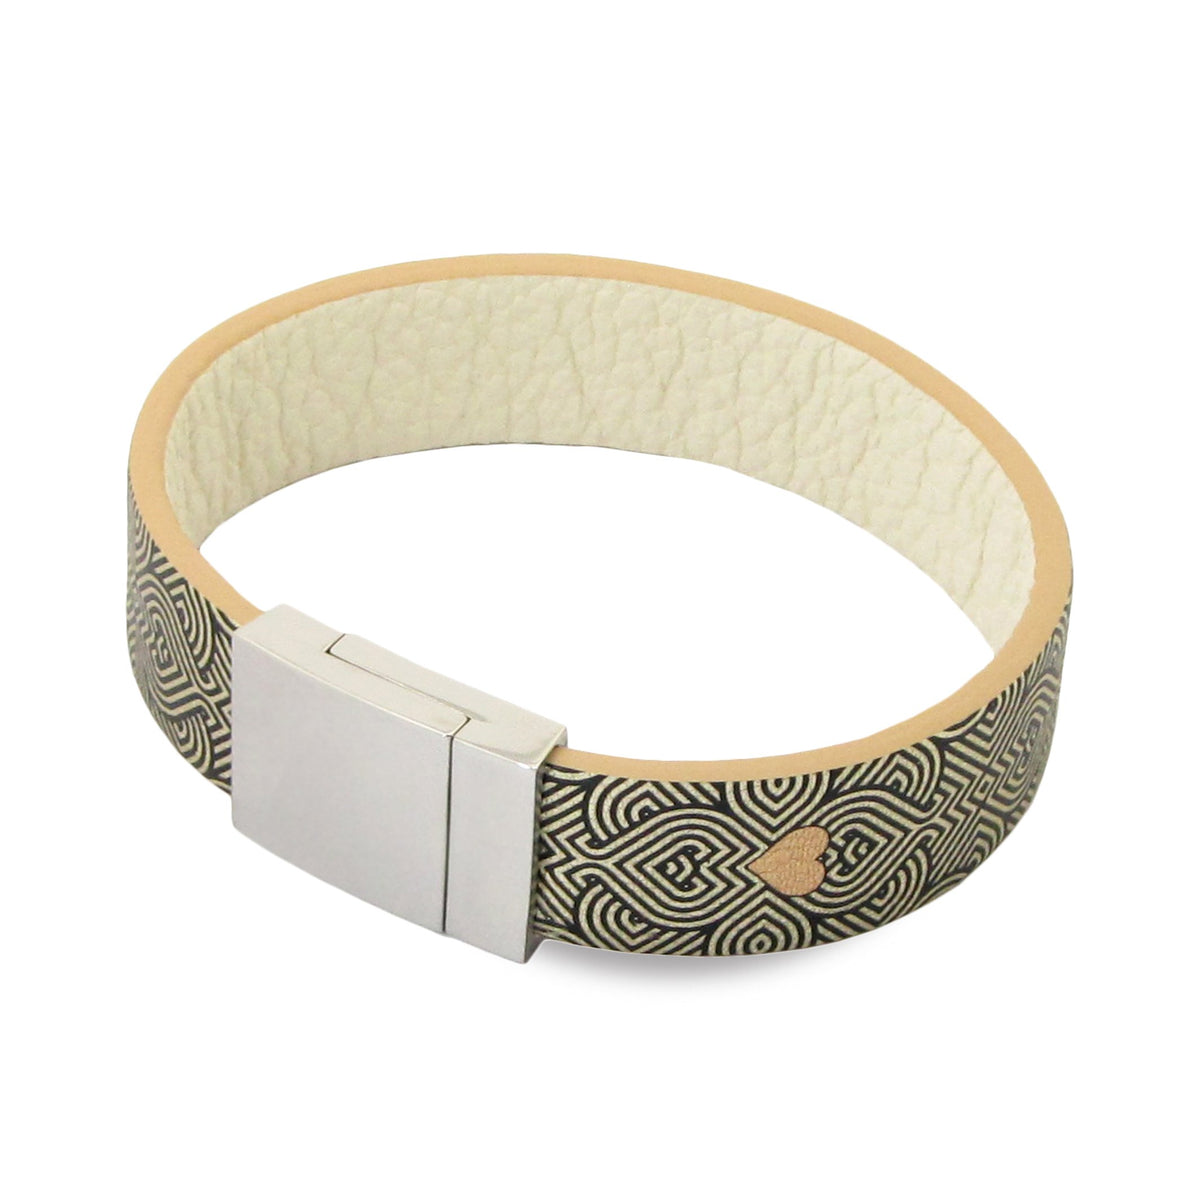 Leather Contactless Payment Bracelet: String of Hearts Contactless Payment Bracelet Tovi Sorga